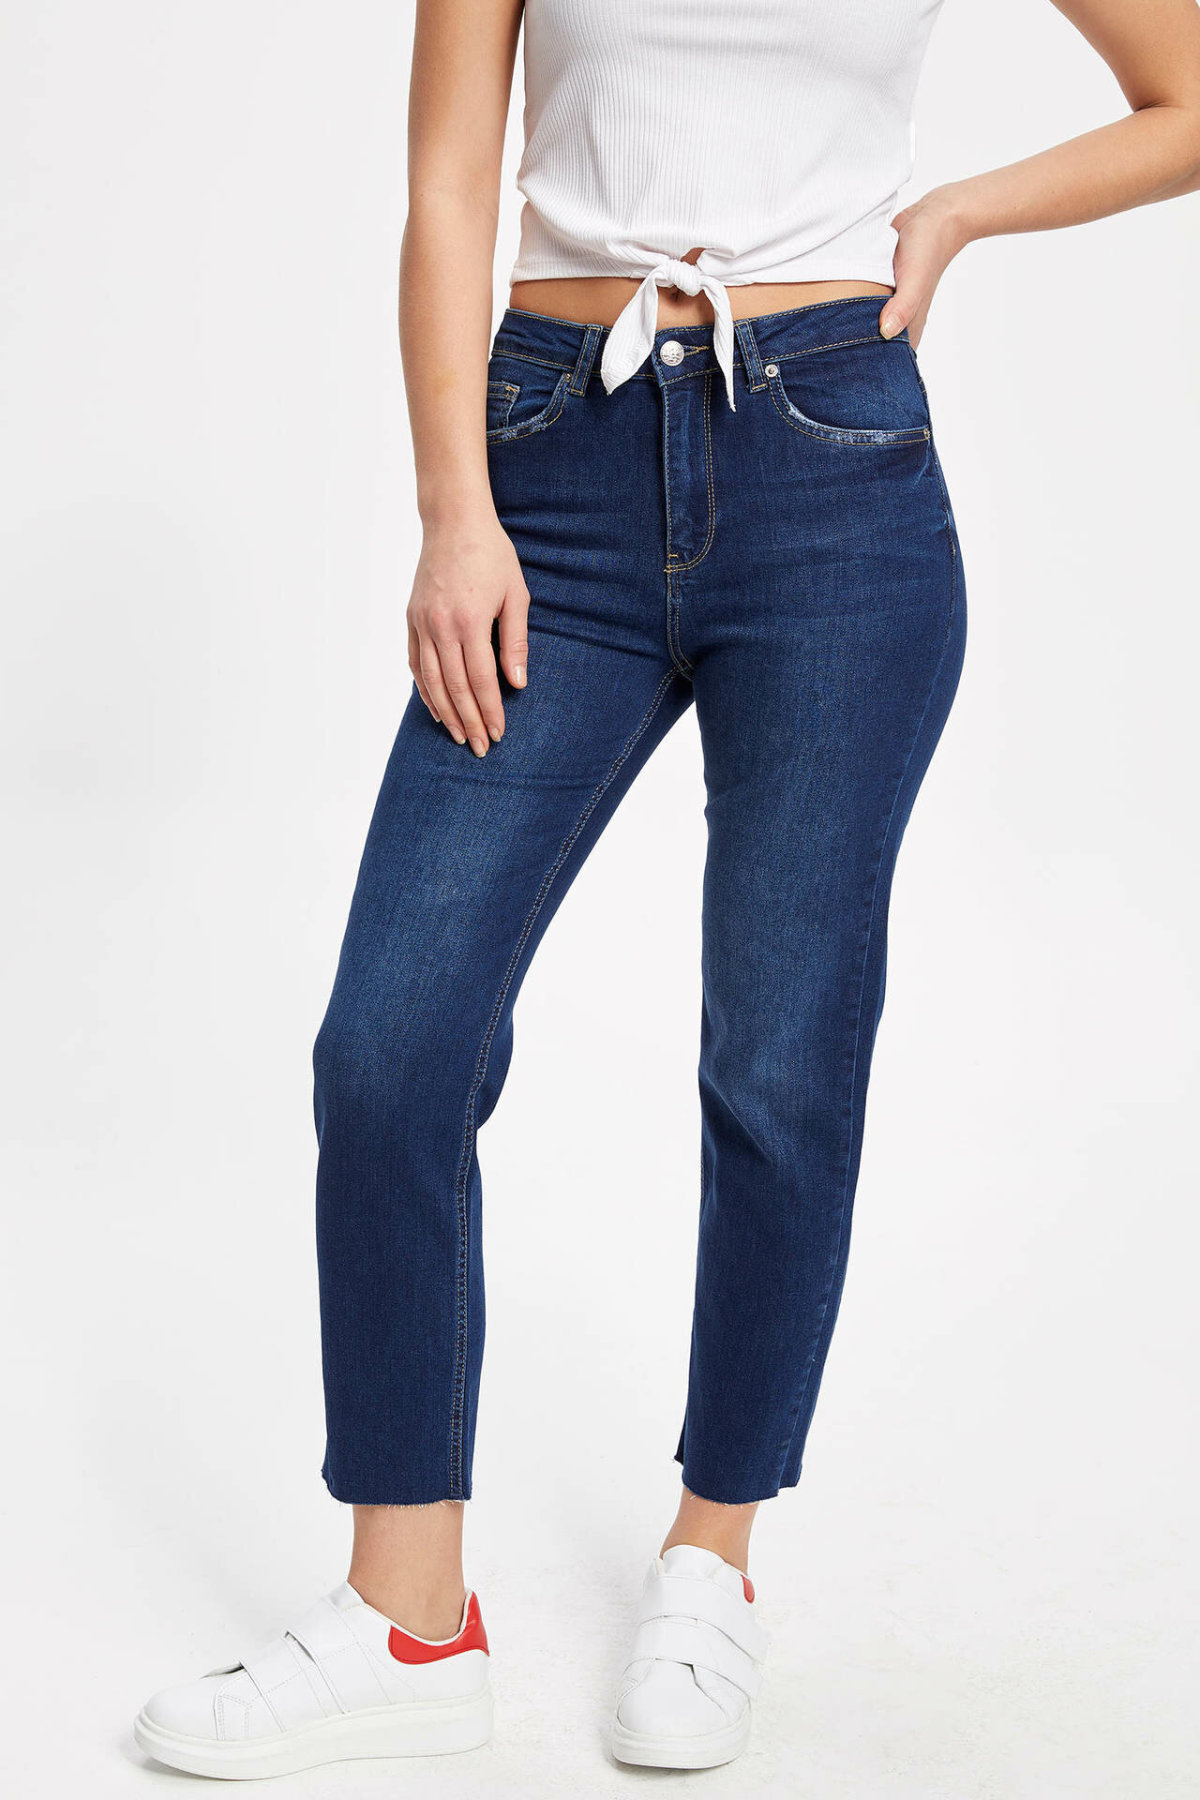 DeFacto Blue Women Jeans Skinny High-waist Pant Slim Stretch Cotton Pencil Denim Nine Minutes Trousers Woman-K3808AZ18CW-K3808AZ18CW